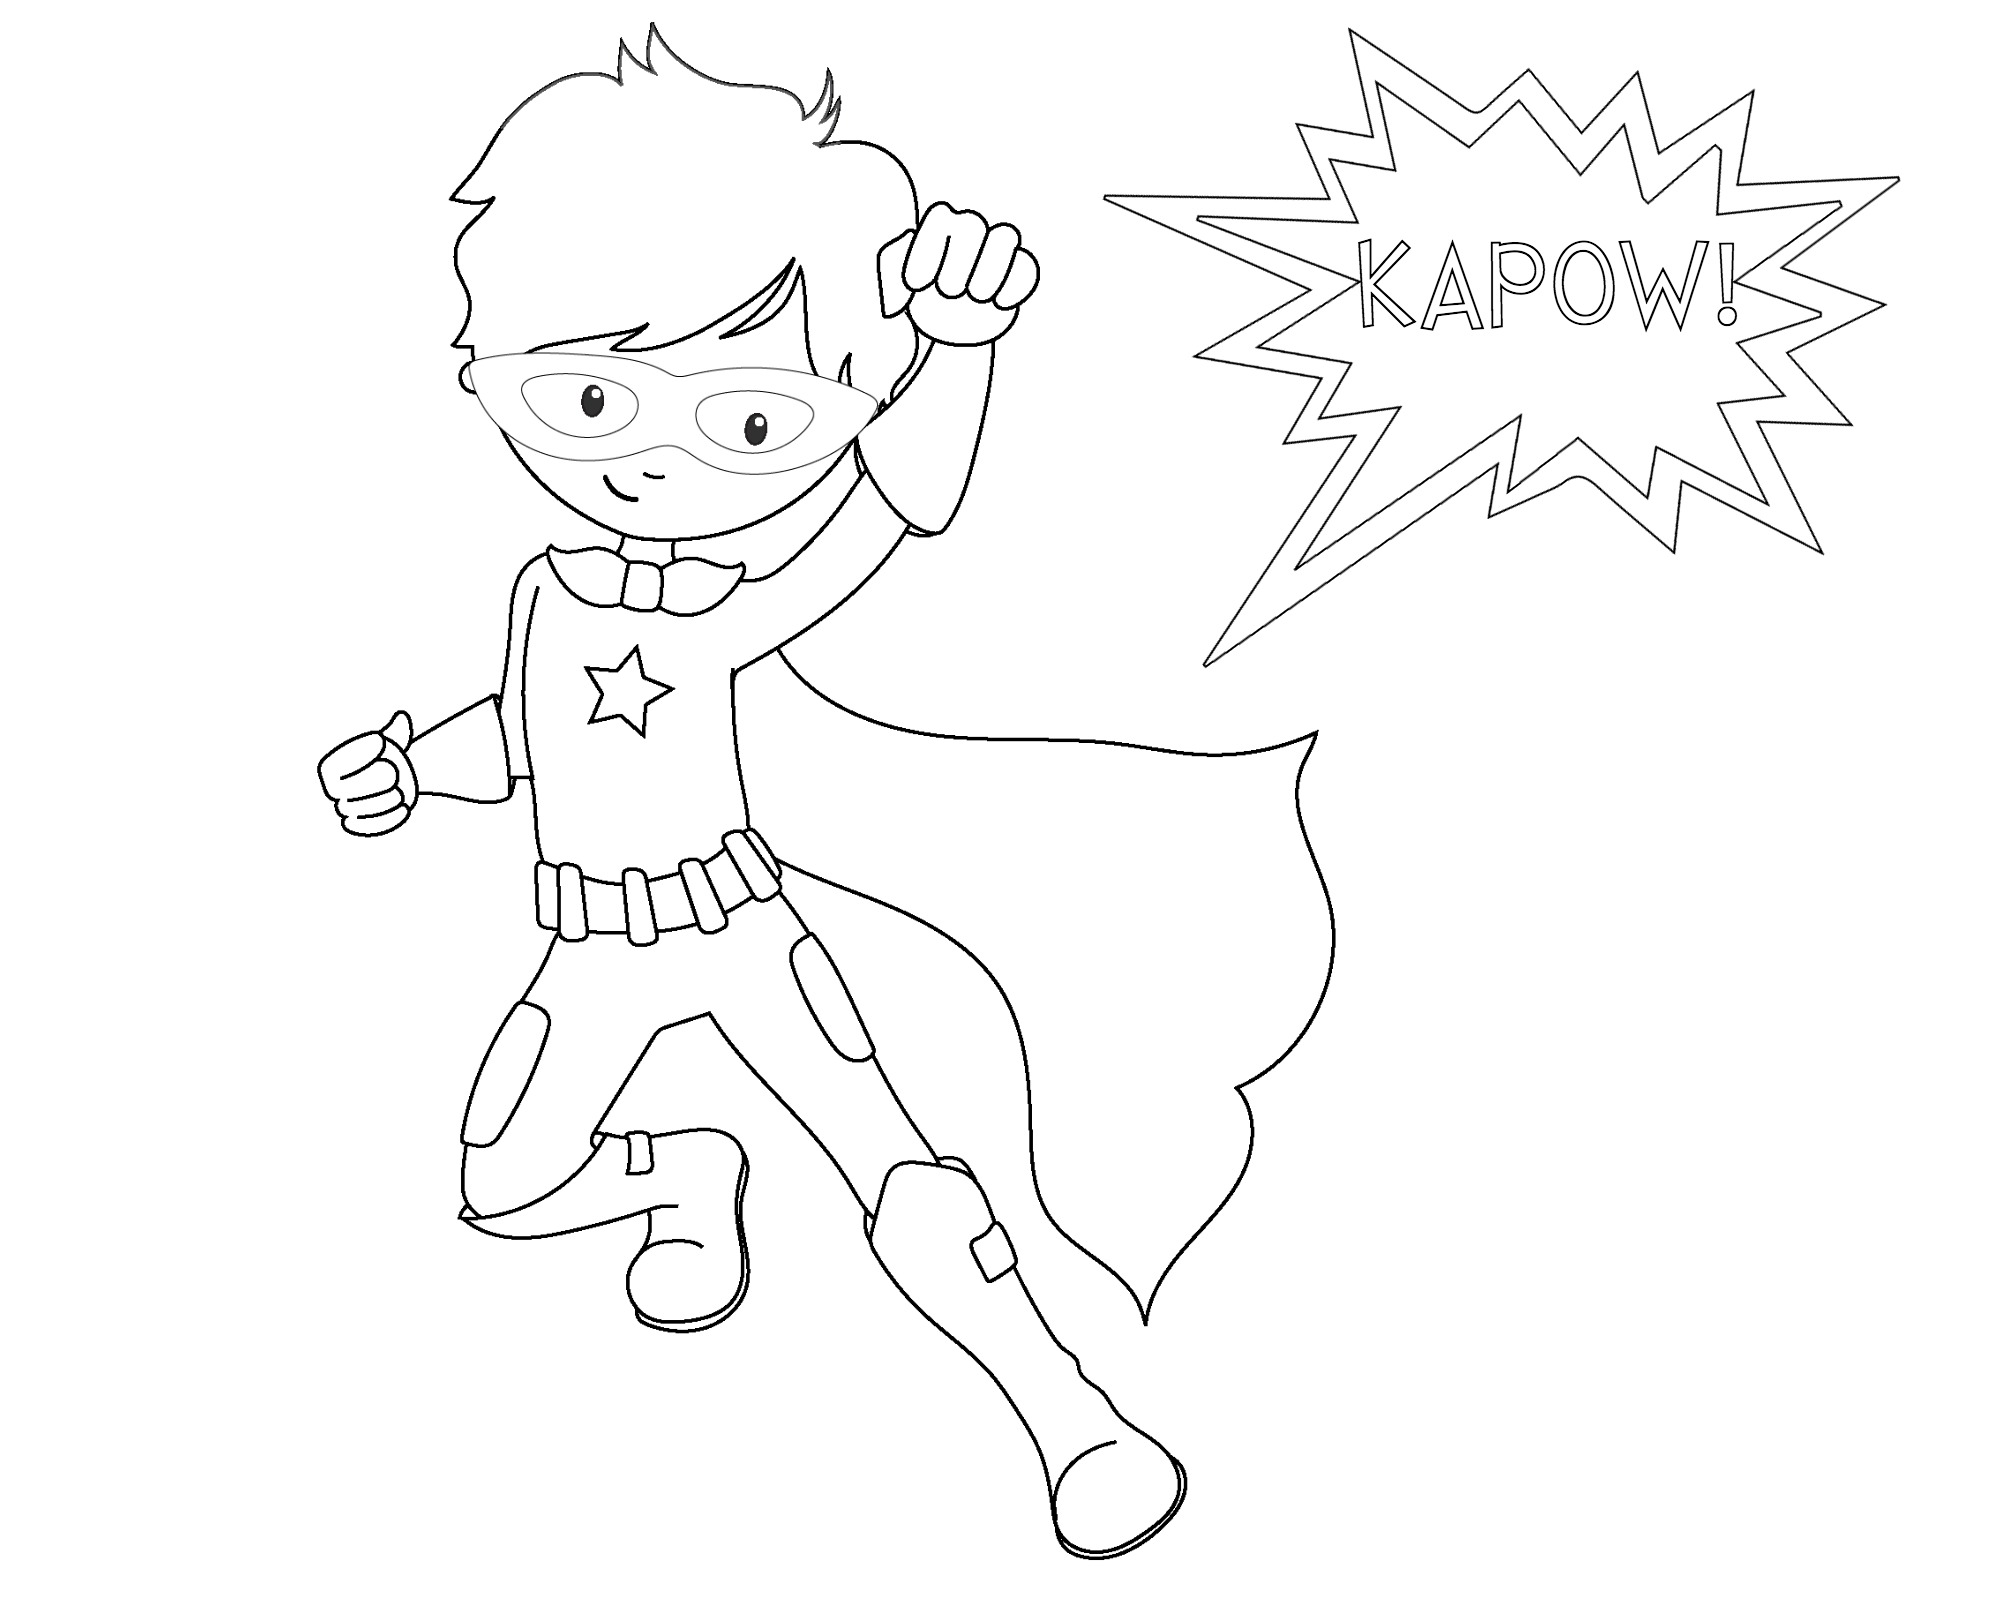 printable superhero coloring pages Free Printable Superhero Coloring Sheets for Kids   Crazy Little  printable superhero coloring pages